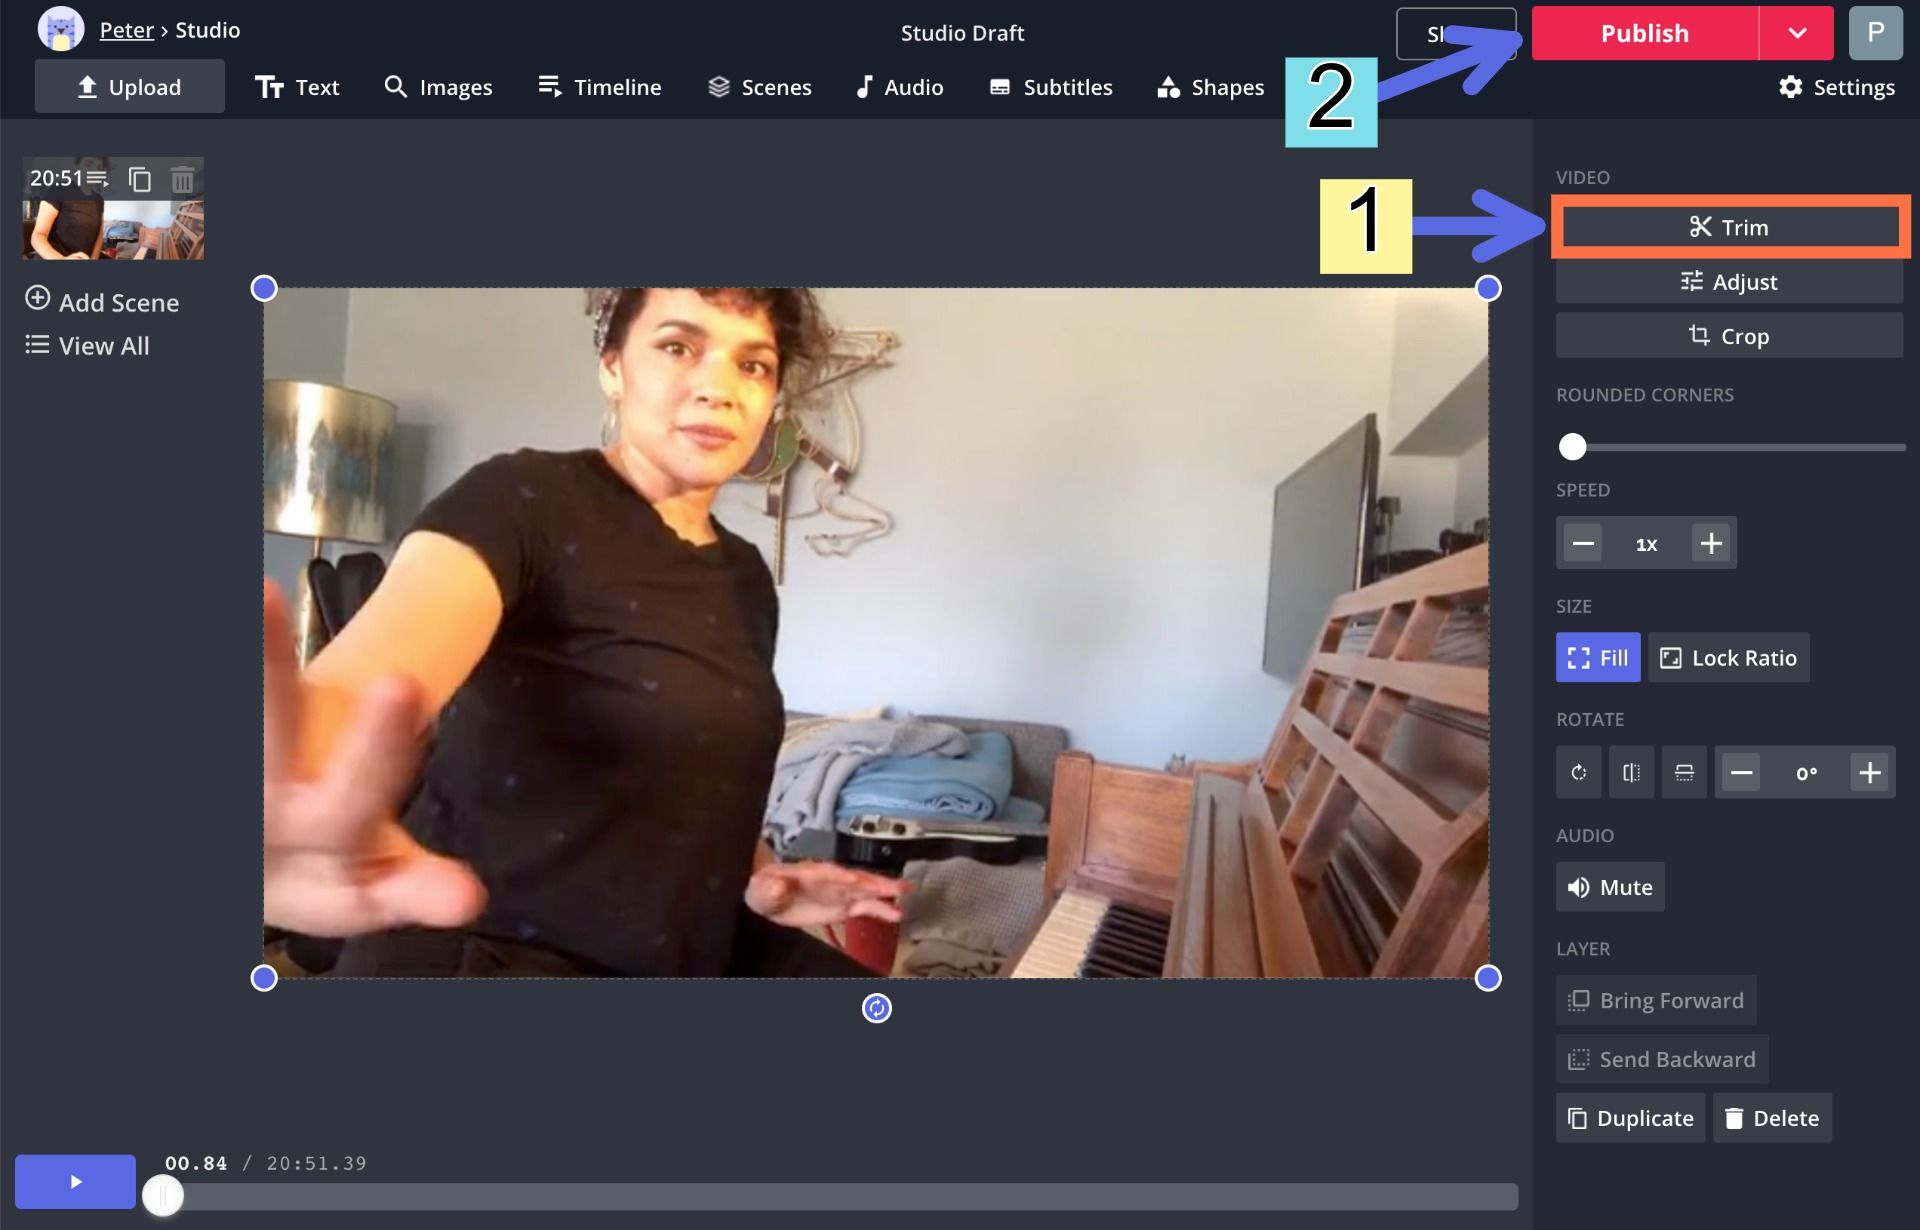 A screenshot showing how to trim and export videos in the Kapwing Studio.